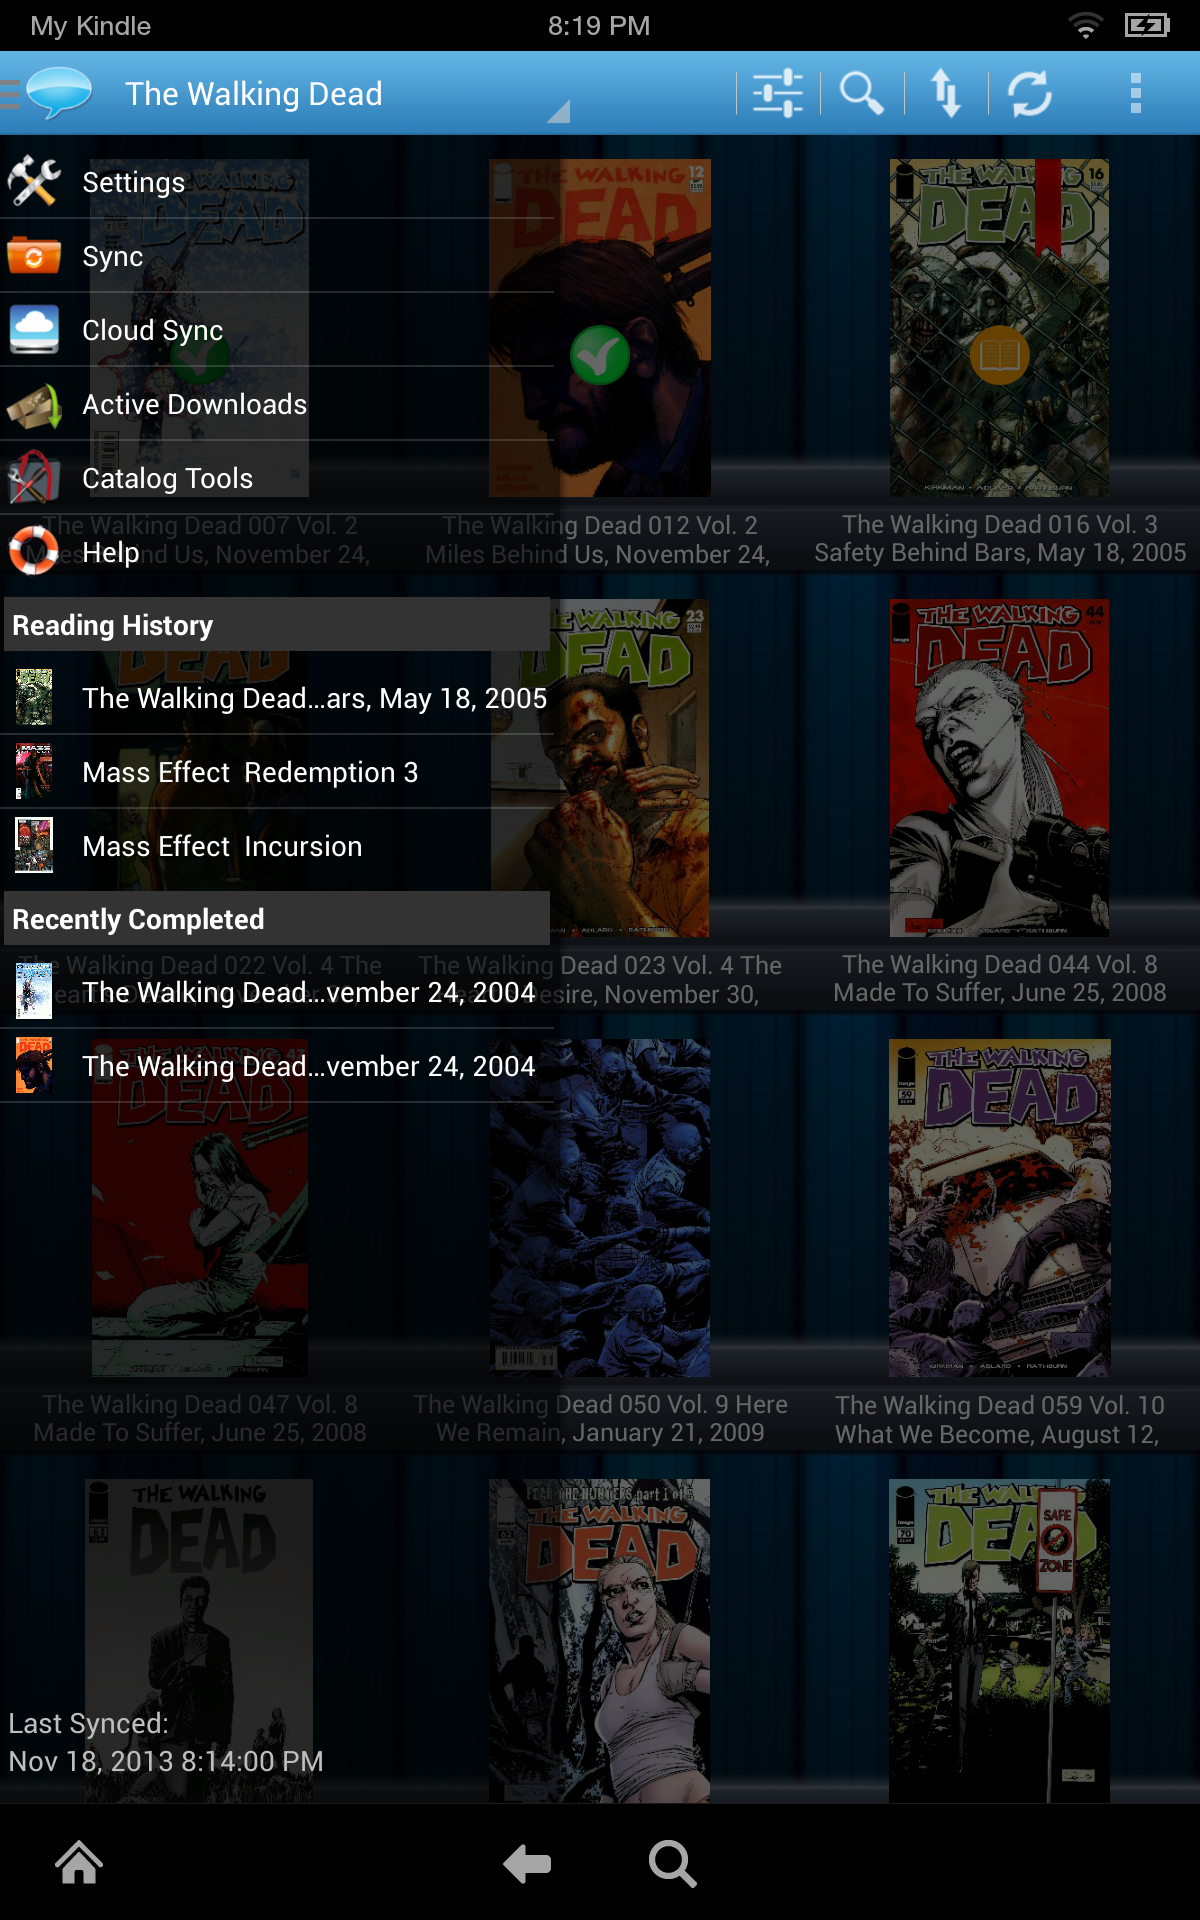 ComiCat (Comic Reader/Viewer)